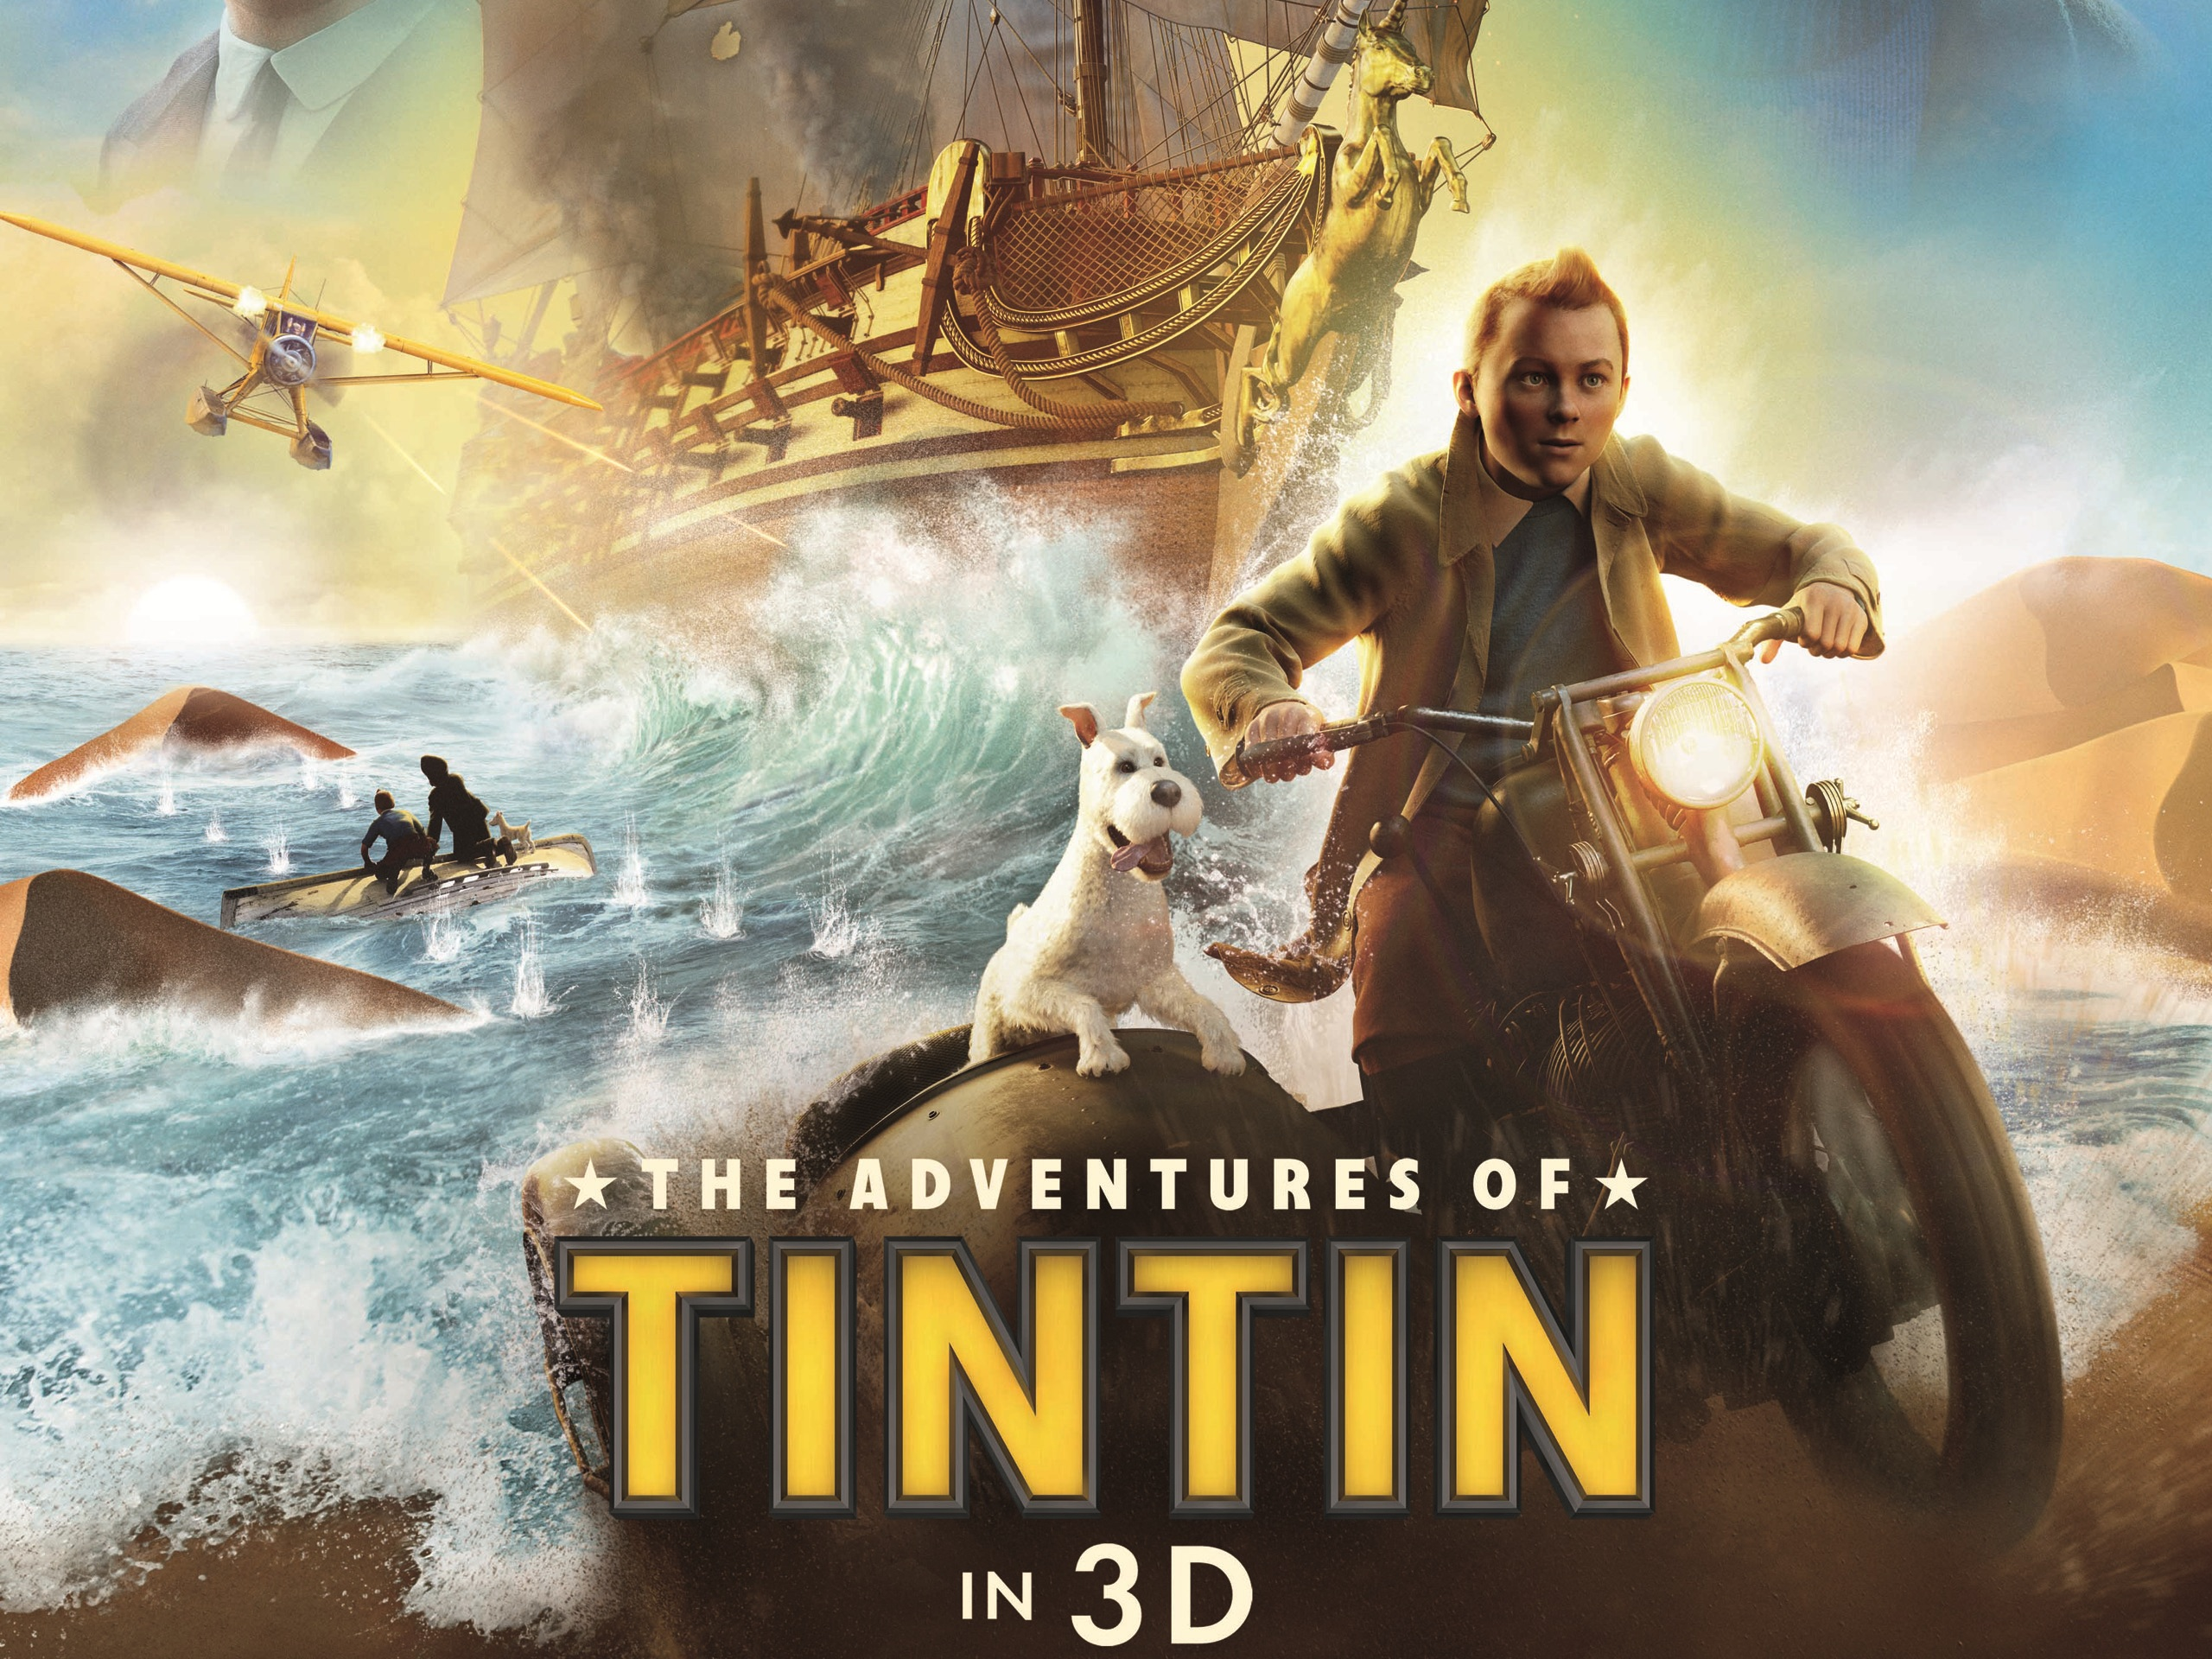 A great adventure with Tintin - Youth Are Awesome